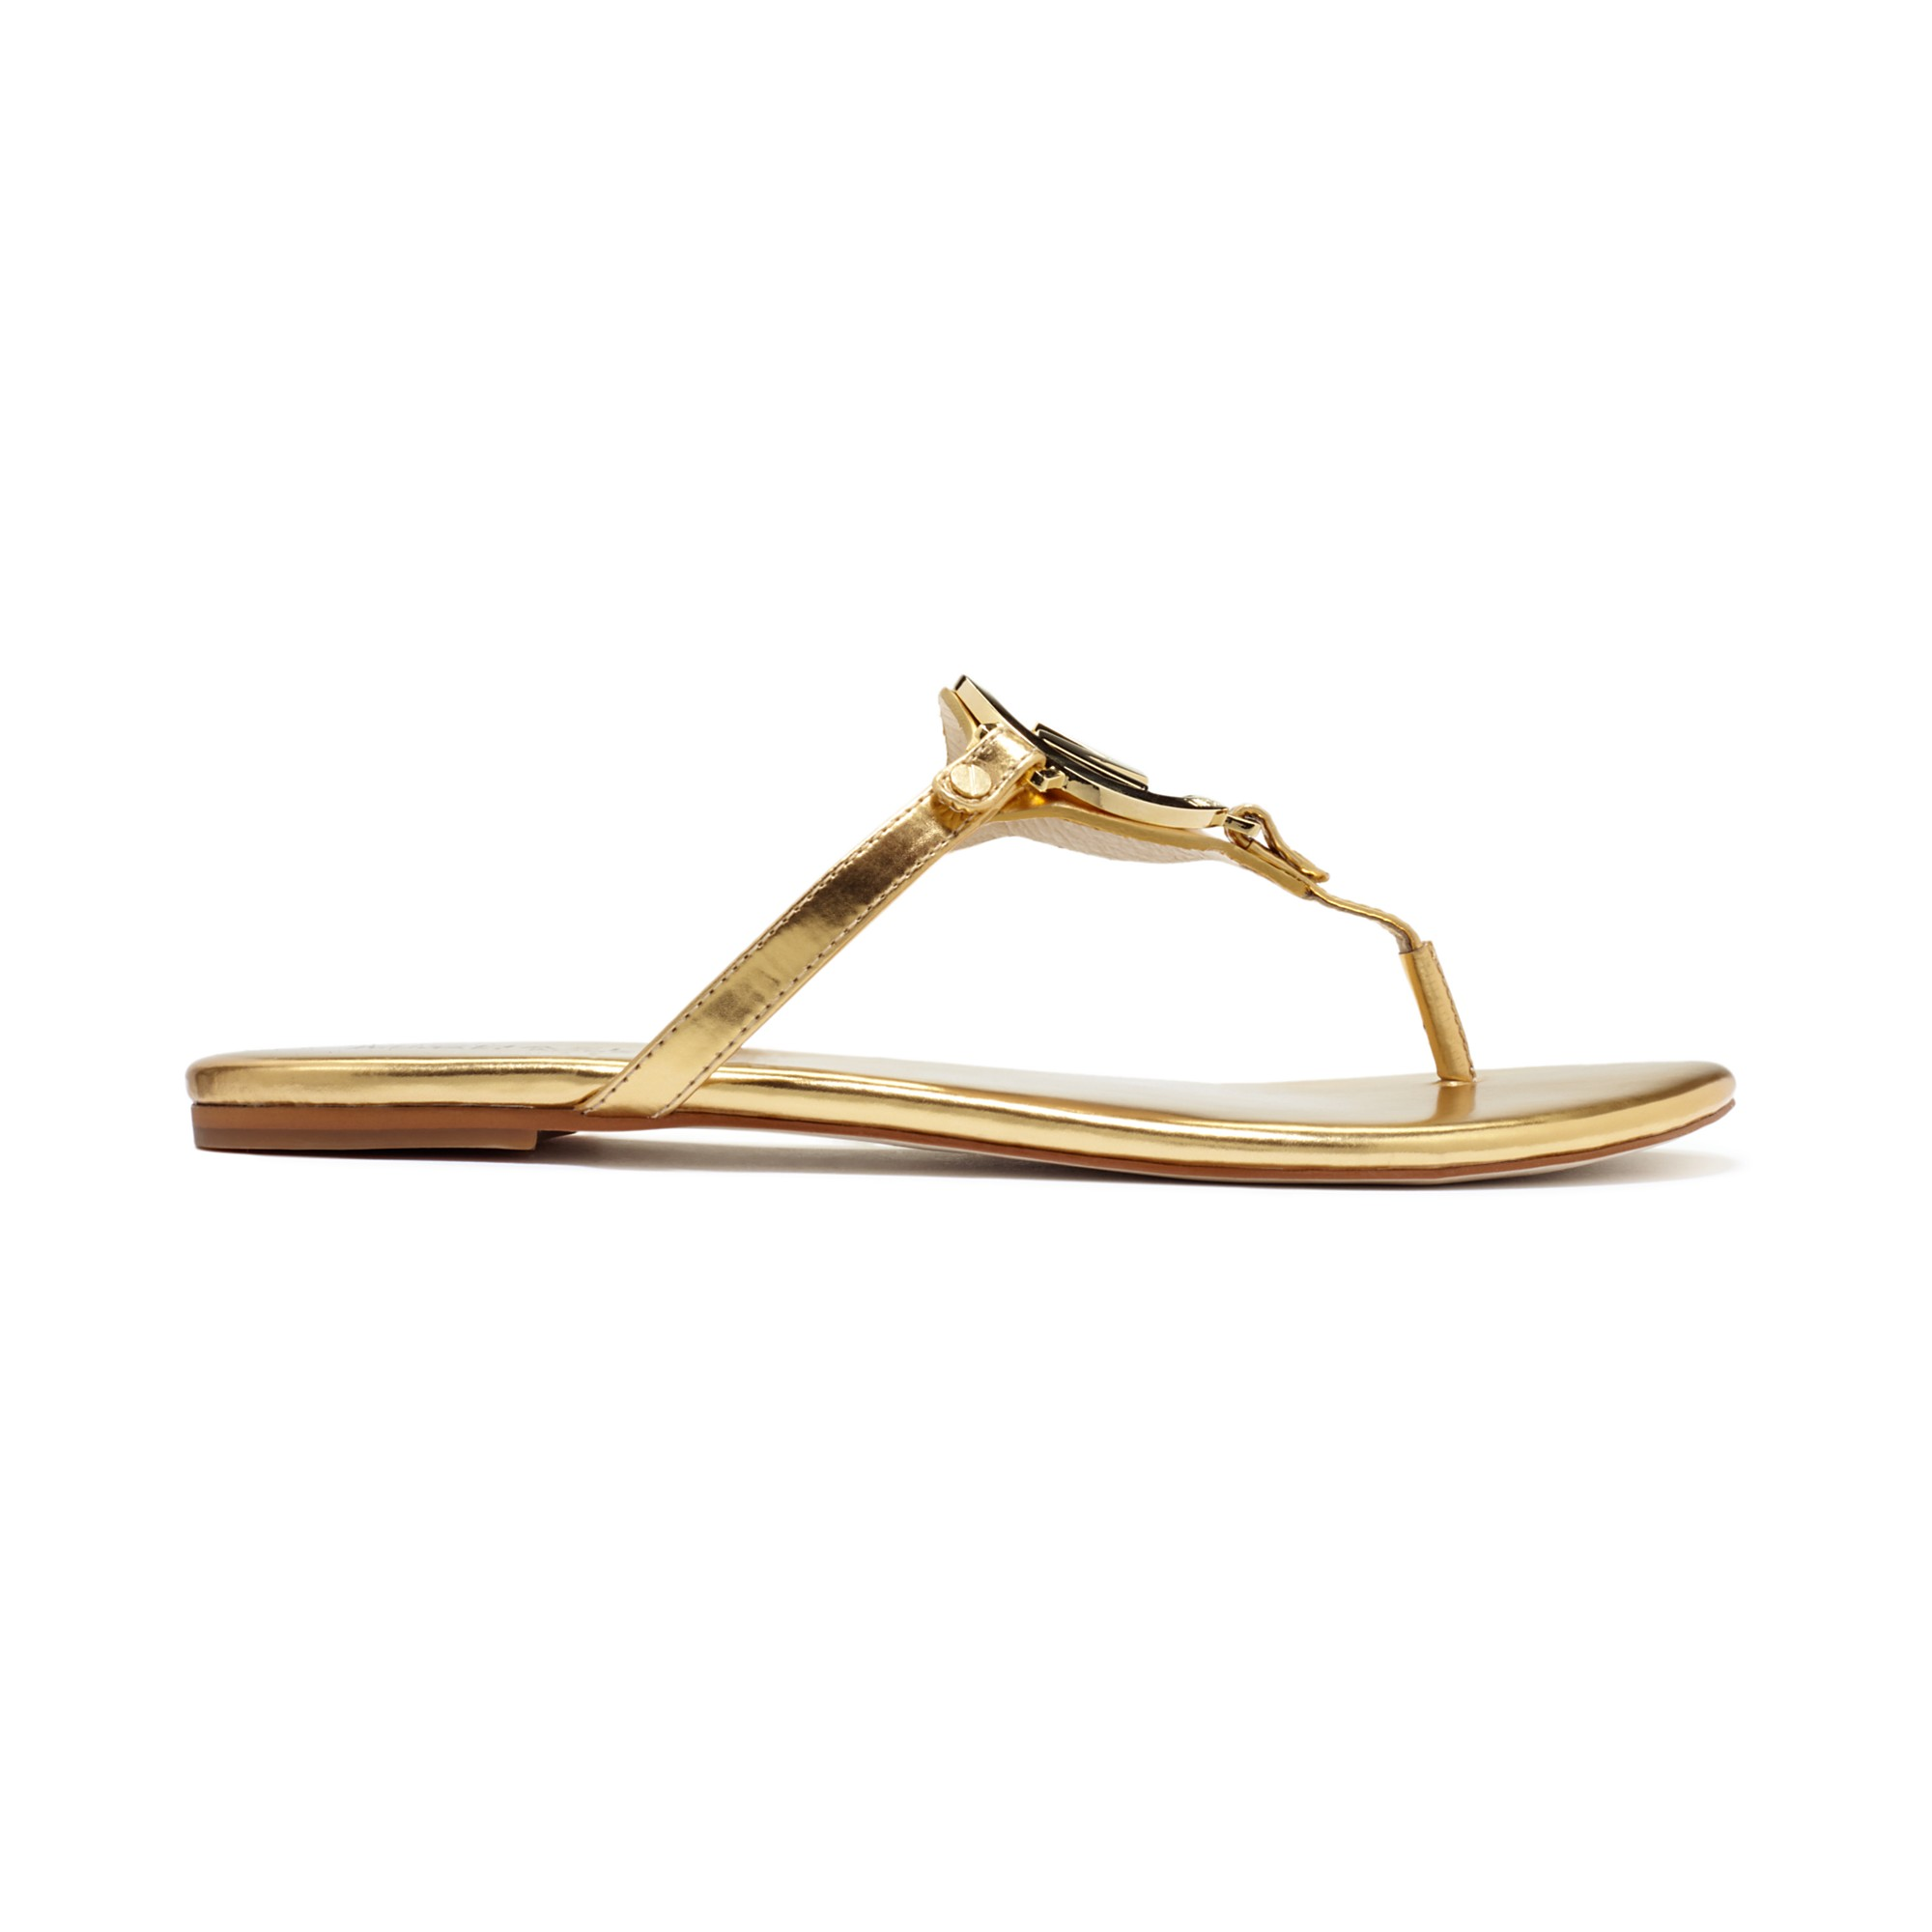 6ced288c0ed3 Lyst - Michael Kors Melodie Flat Thong Sandals in Metallic